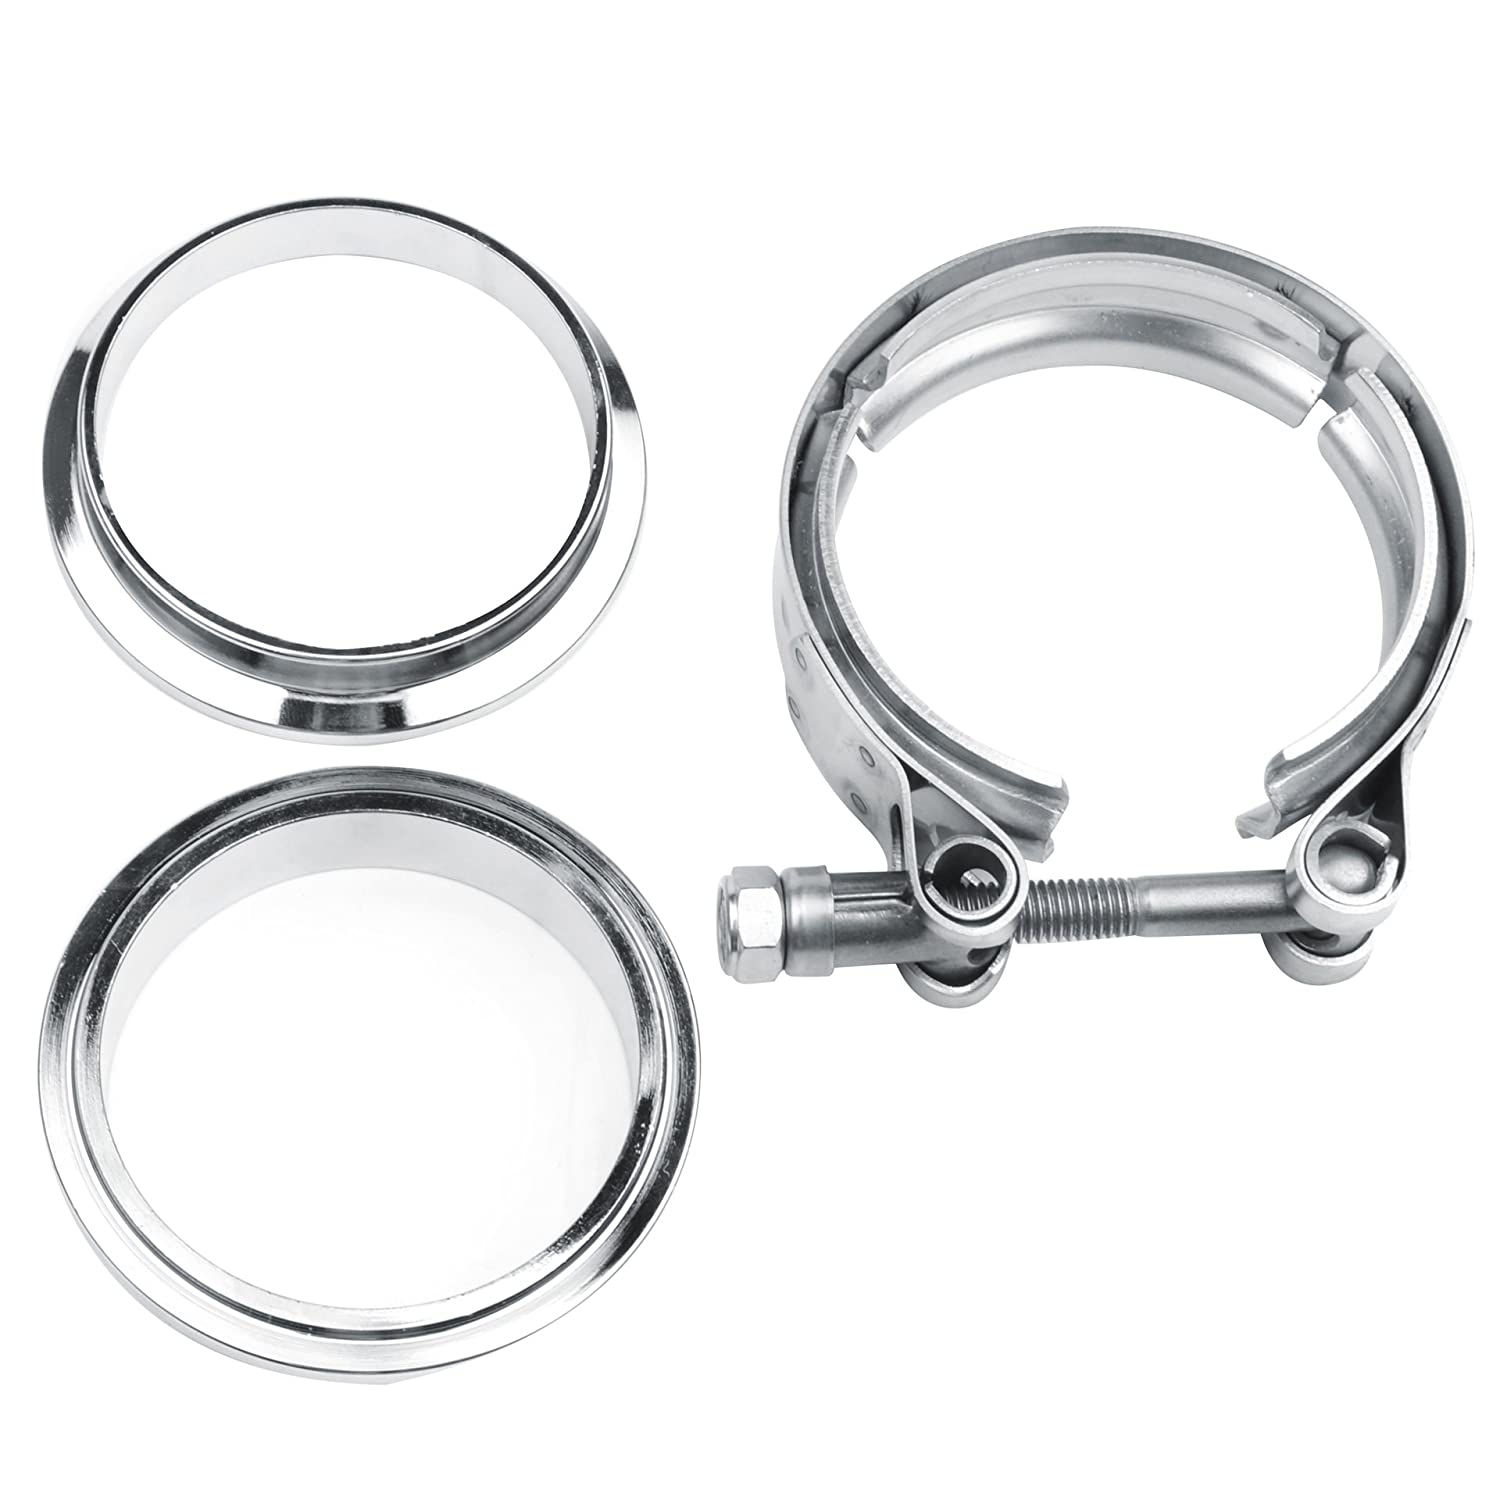 Turbo Exhaust Ring: 2.5'' V-Band Flange & Clamp Kit For Turbo Exhaust